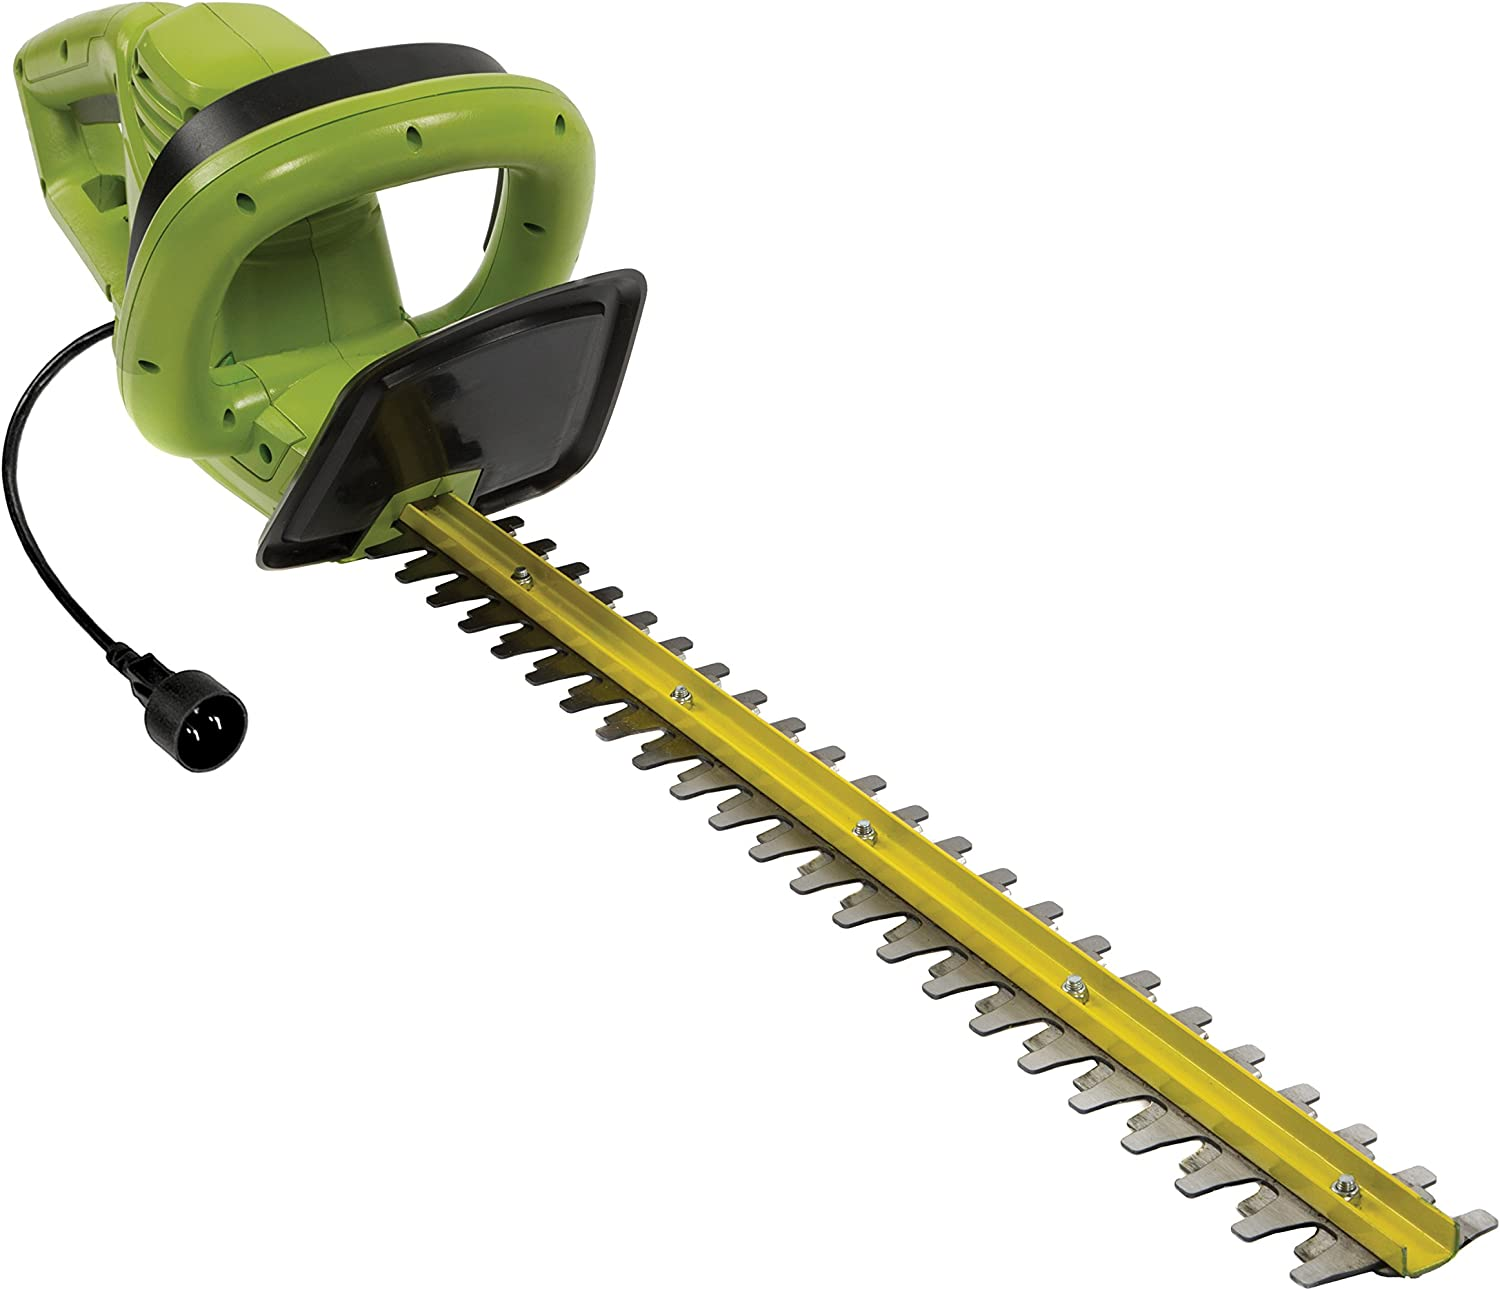 Sun Joe HJ22HTE-PRO 20-Inch 3.8 Amp Electric Hedge Trimmer, Green